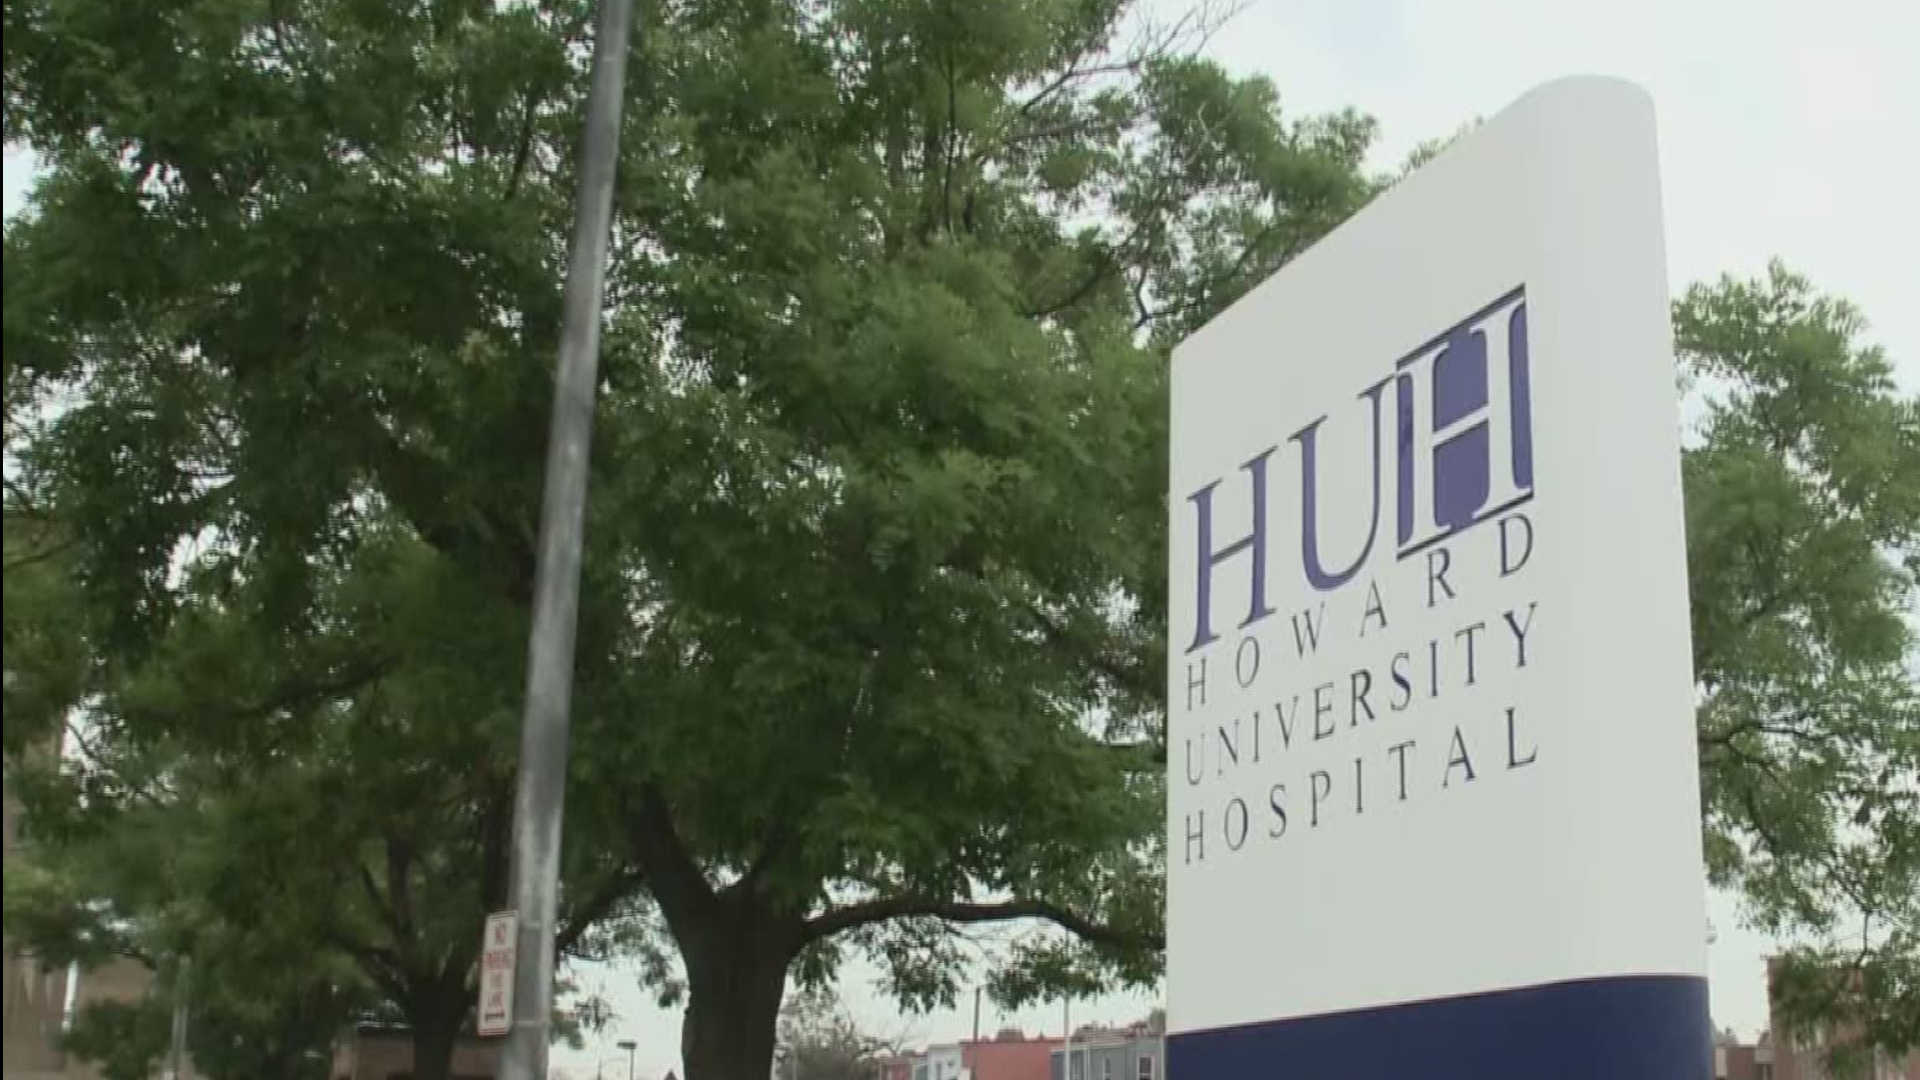 Howard University Hospital Enters New Chapter As Part Of Adventist